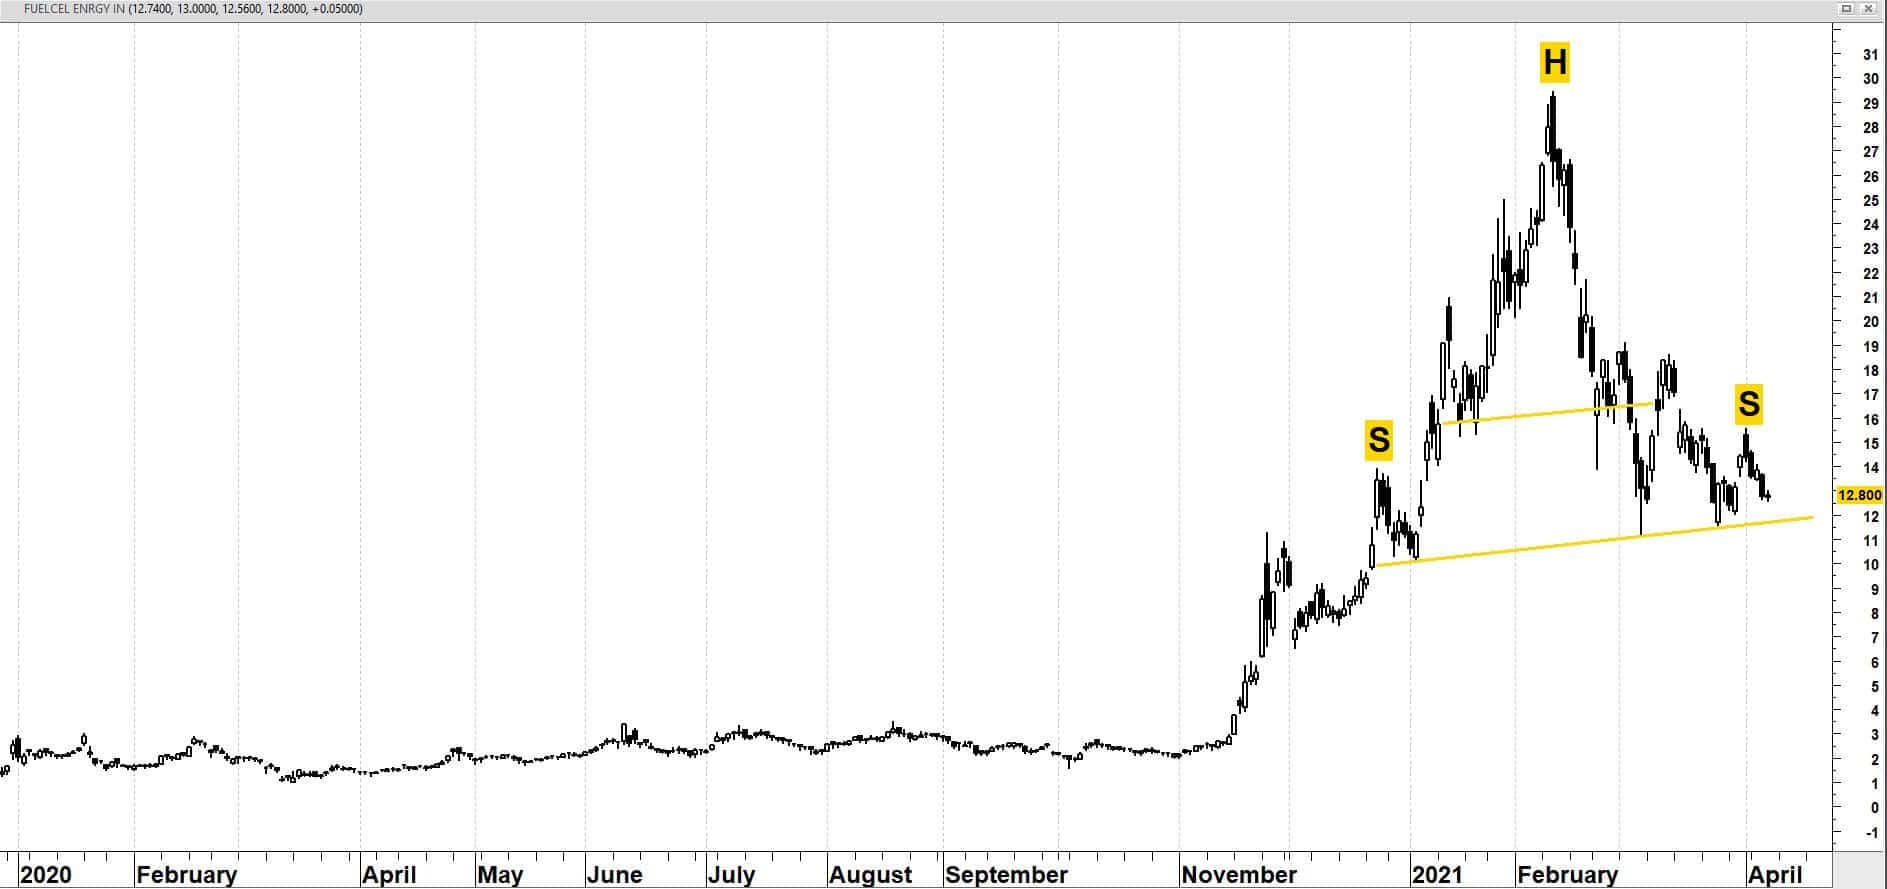 FuelCell Energy Inc. (FCEL)